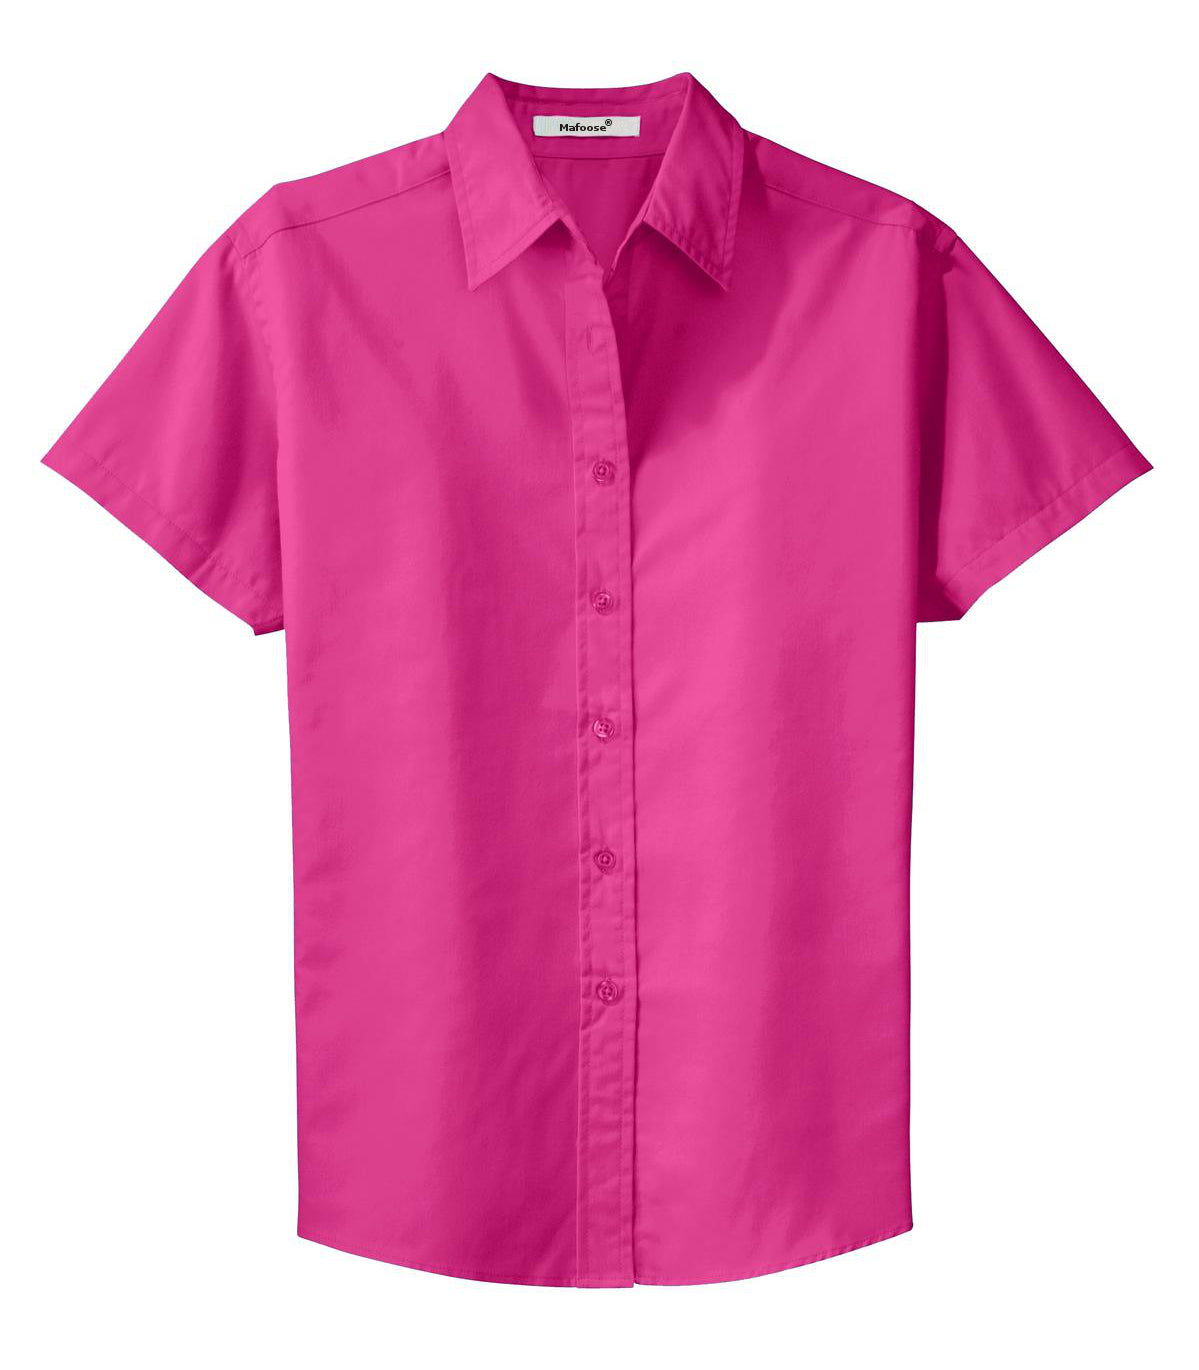 Mafoose Women's Comfortable Short Sleeve Easy Care Shirt Tropical Pink-Front